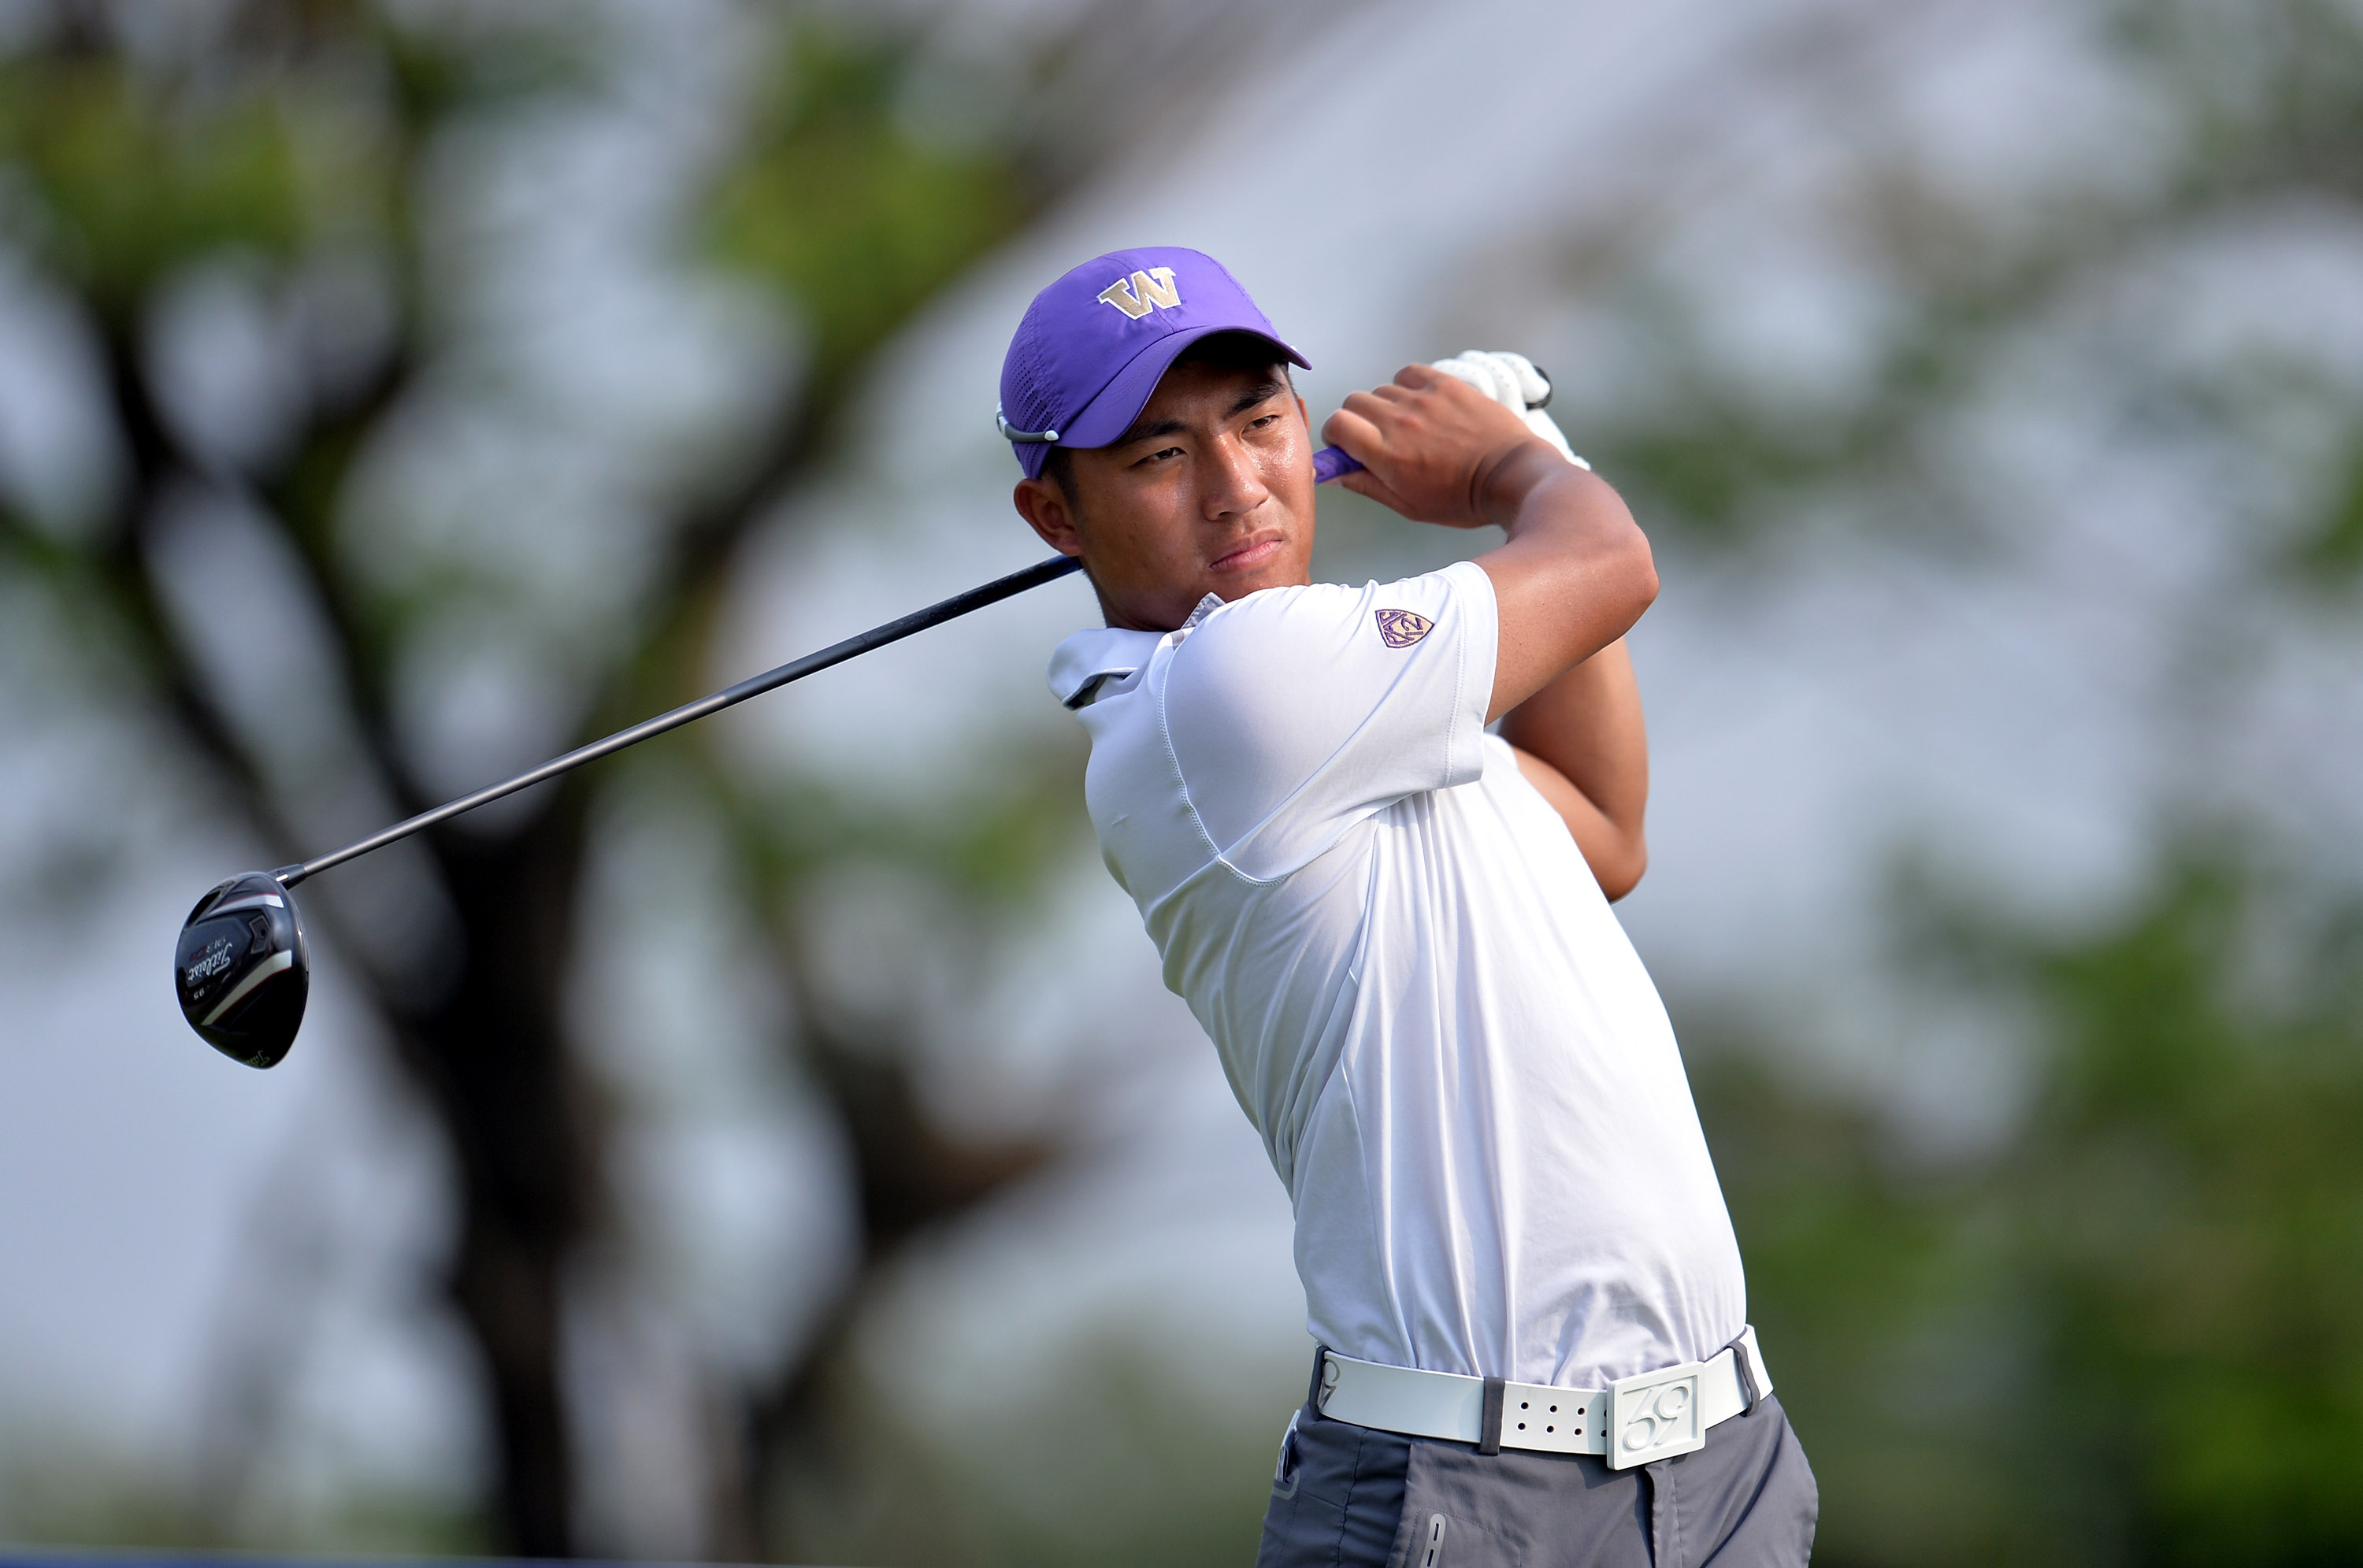 Cheng-Tsung Pan at the Open Qualifying Series on March 7, 2014 in Bangkok, Thailand. (Stanley Chou/R&A)